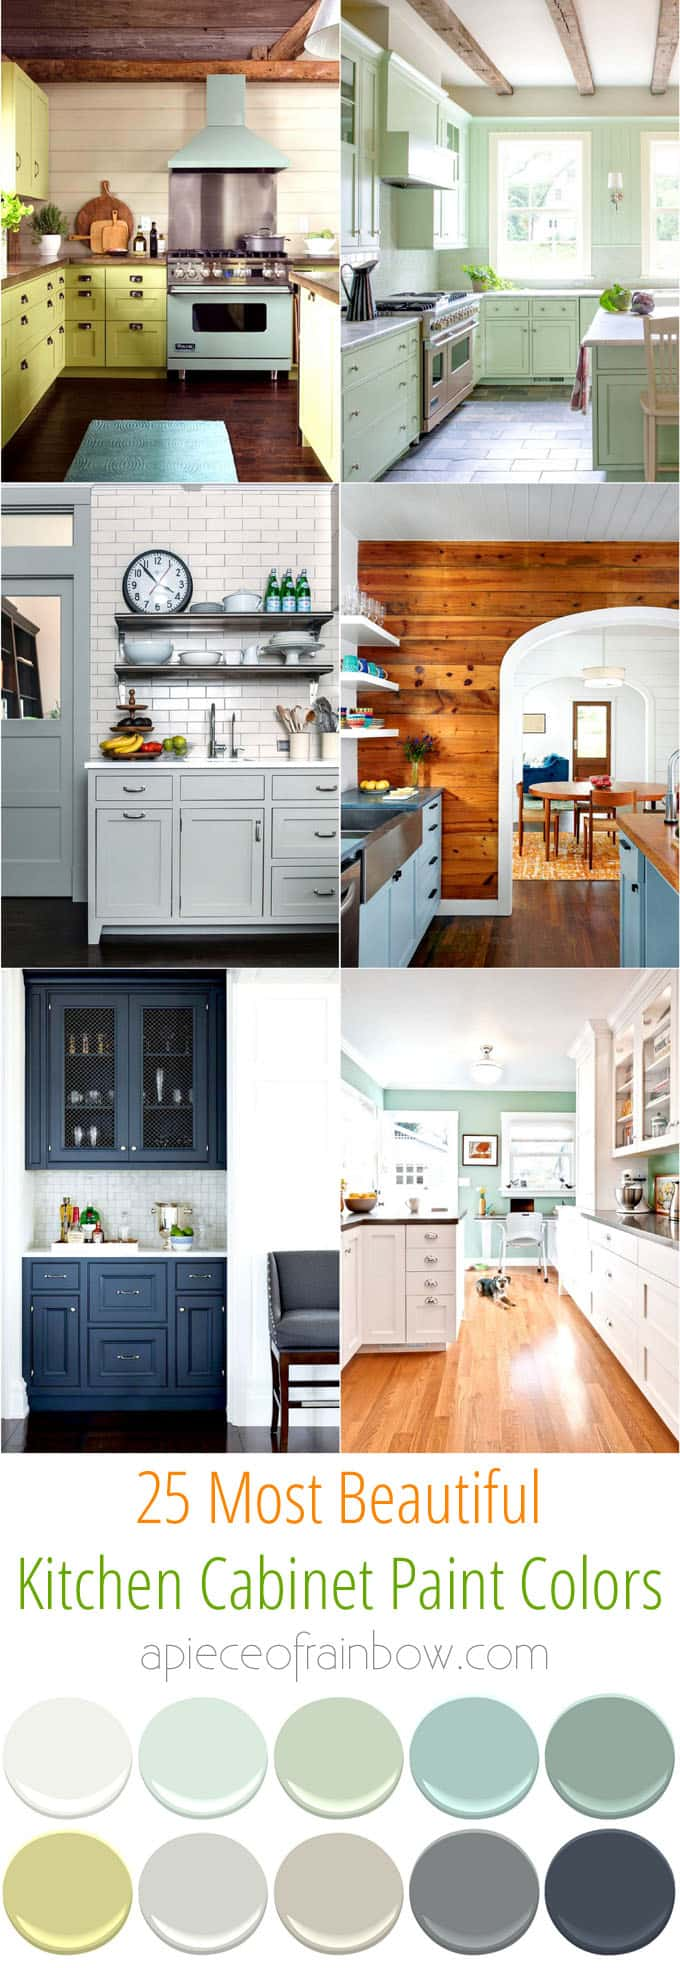 25-beautiful-paint-colors-for-kitchen-cabinets-apieceofrainbowblog (16)